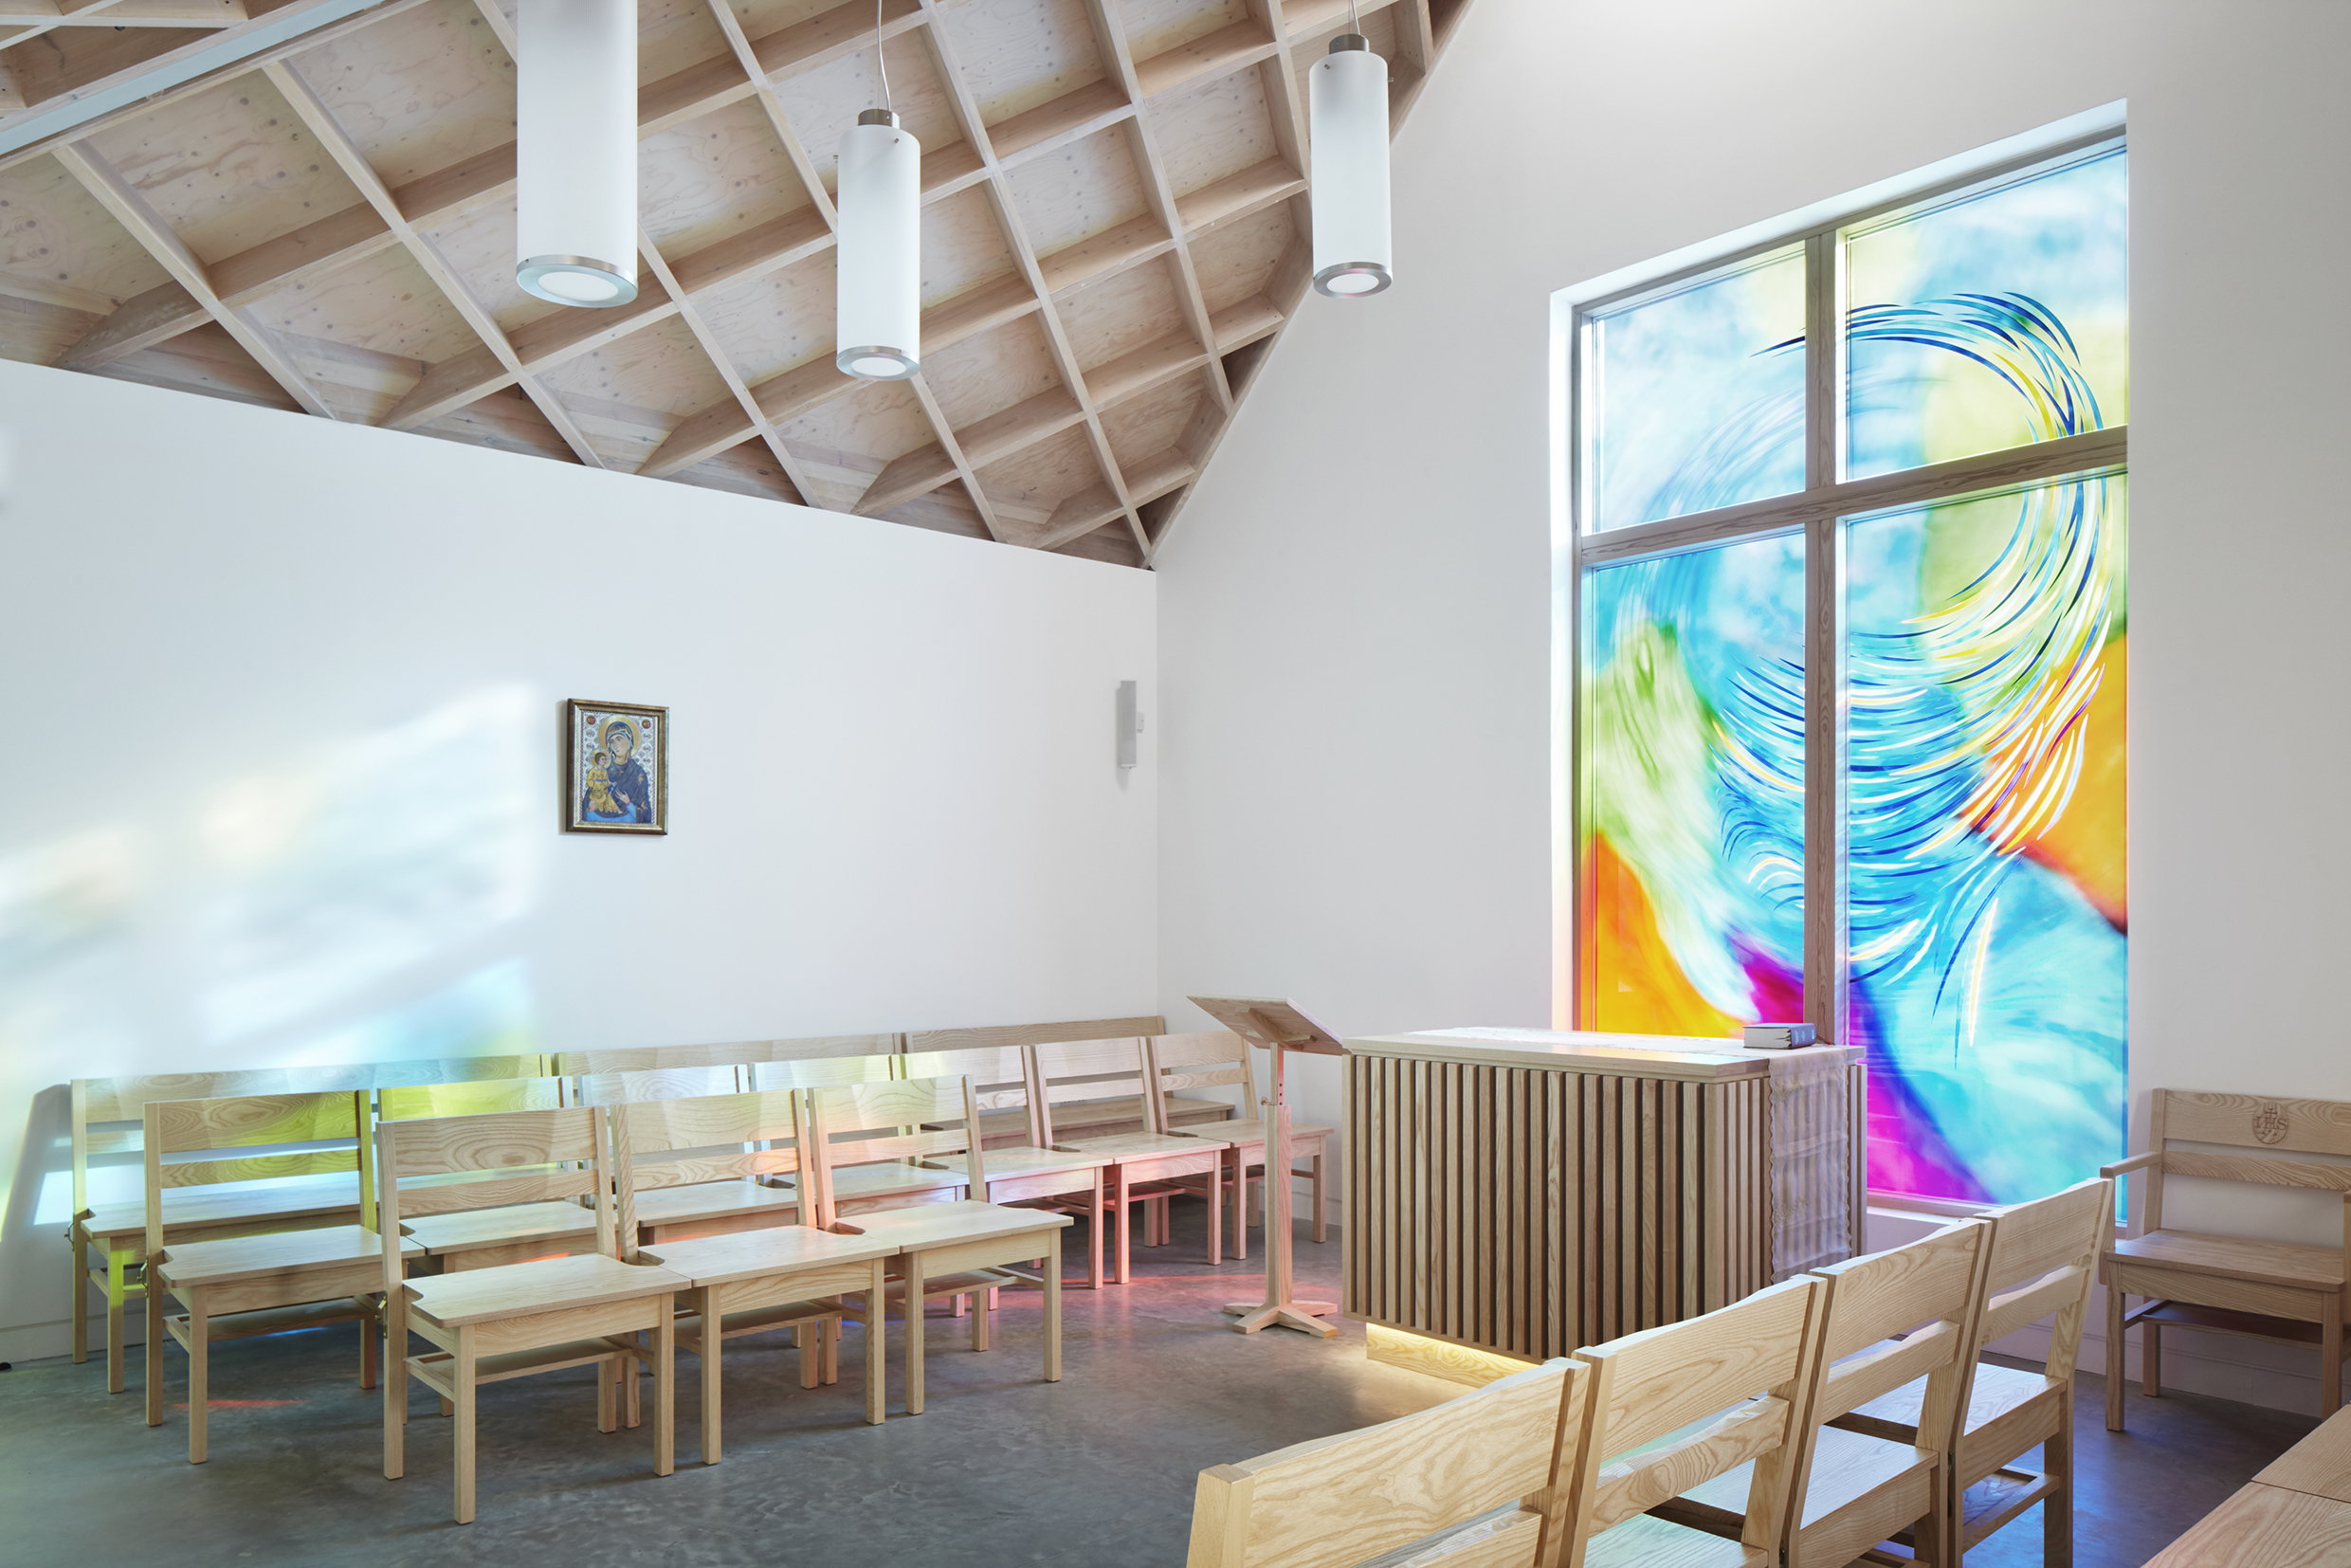 Presidents' Award for new buildings: Donhead School Chapel